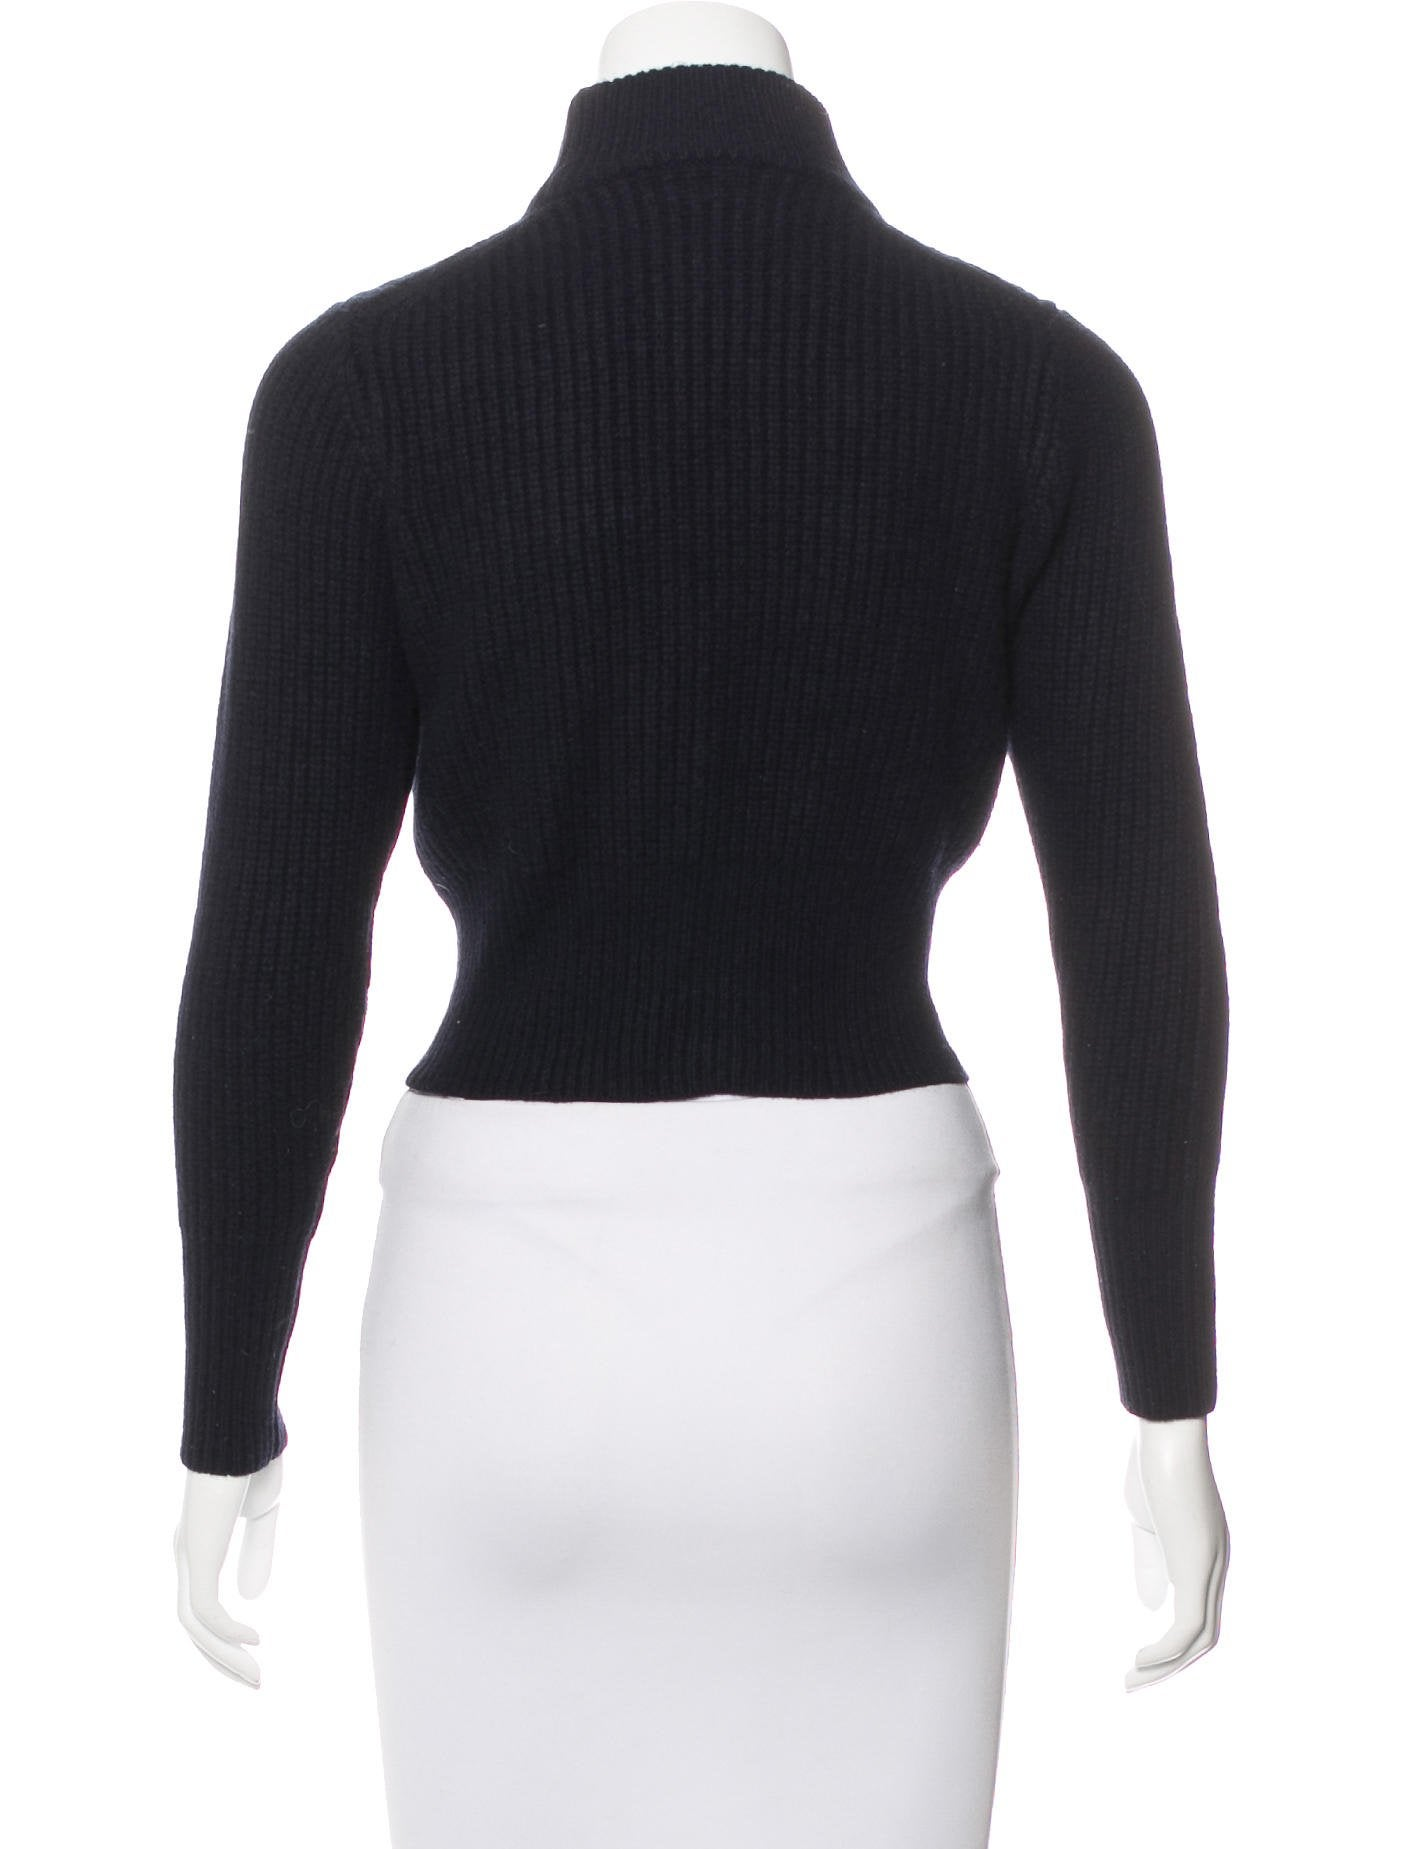 Acne Studios Wool Cropped Sweater - Clothing - ACN32816 | The RealReal